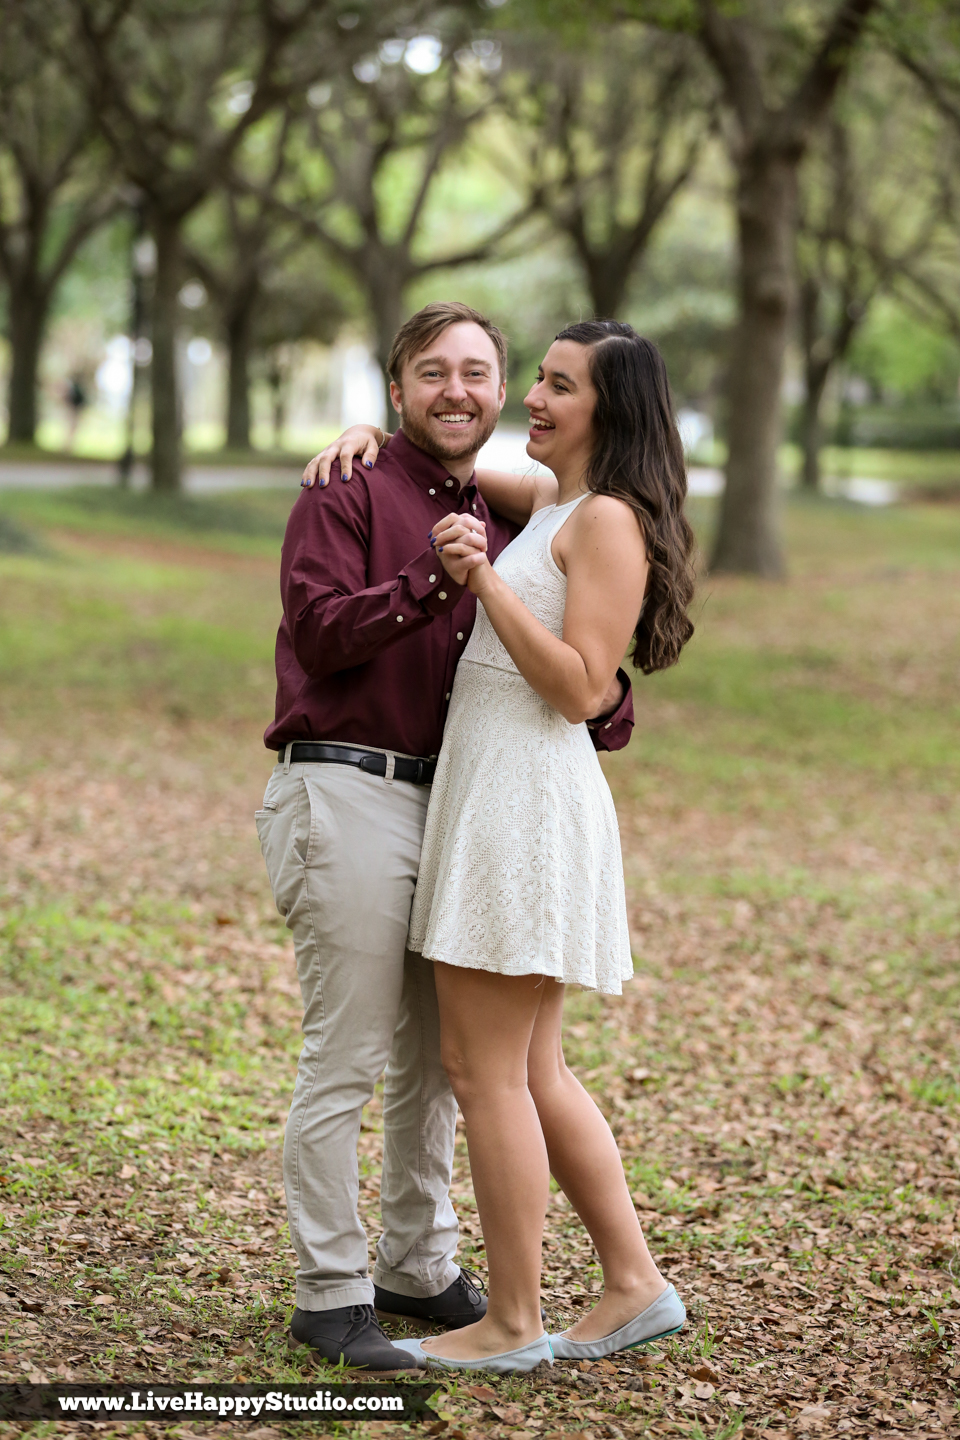 www.livehappystudio.com-cypress-grove-park-orlando-florida-engagement-photographer-candid-road-of-trees25.jpg